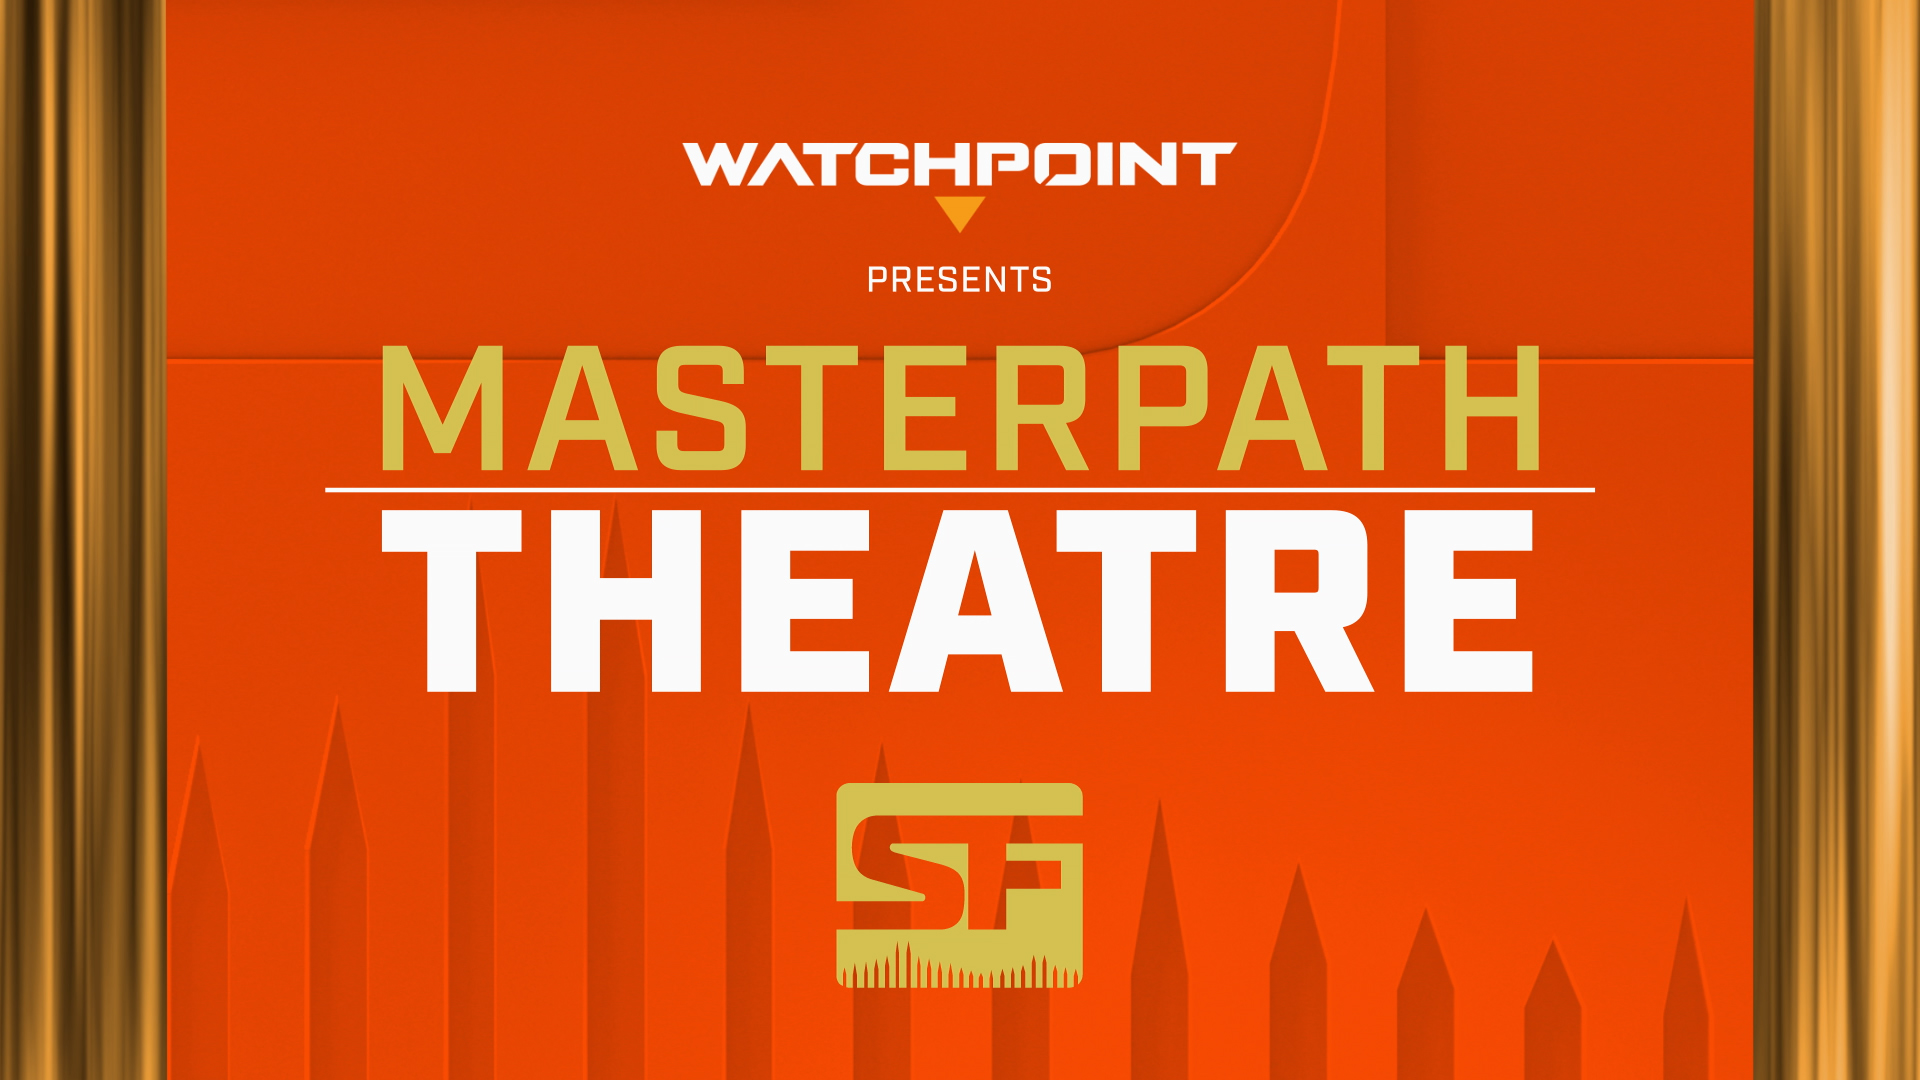 Watchpoint presents MasterPath Theatre: The San Francisco Shock